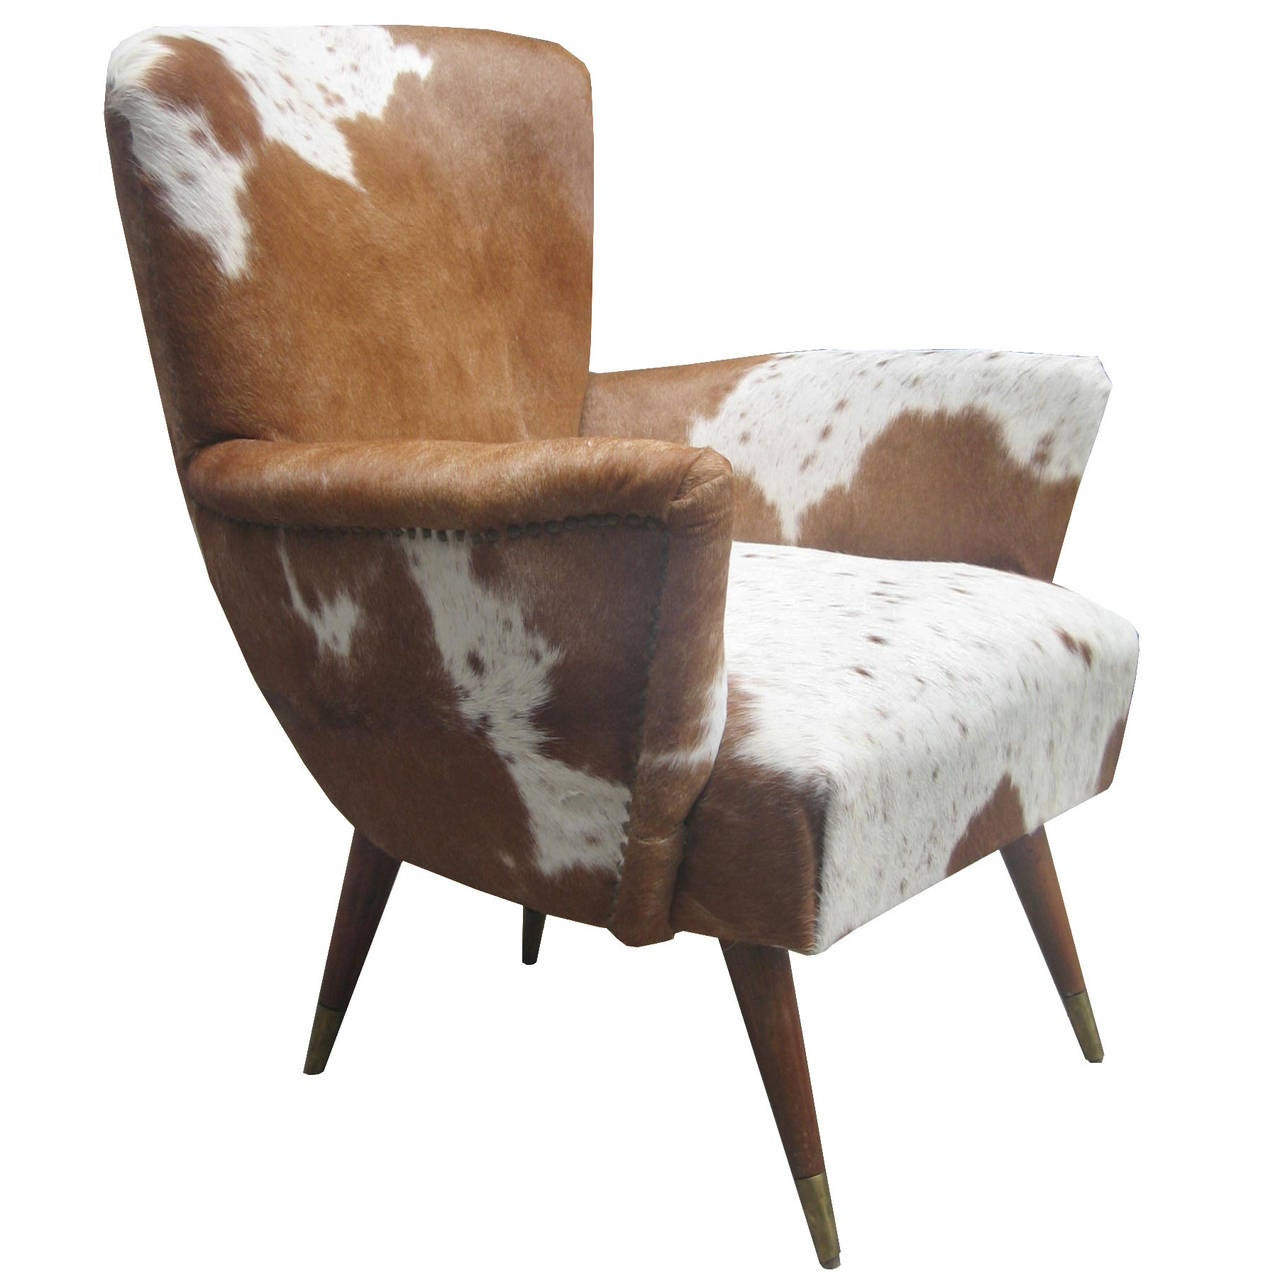 pair of modernist italian cowhide chairs at 1stdibs rh 1stdibs com cowhide chairs australia cowhide chairs with nailhead trim